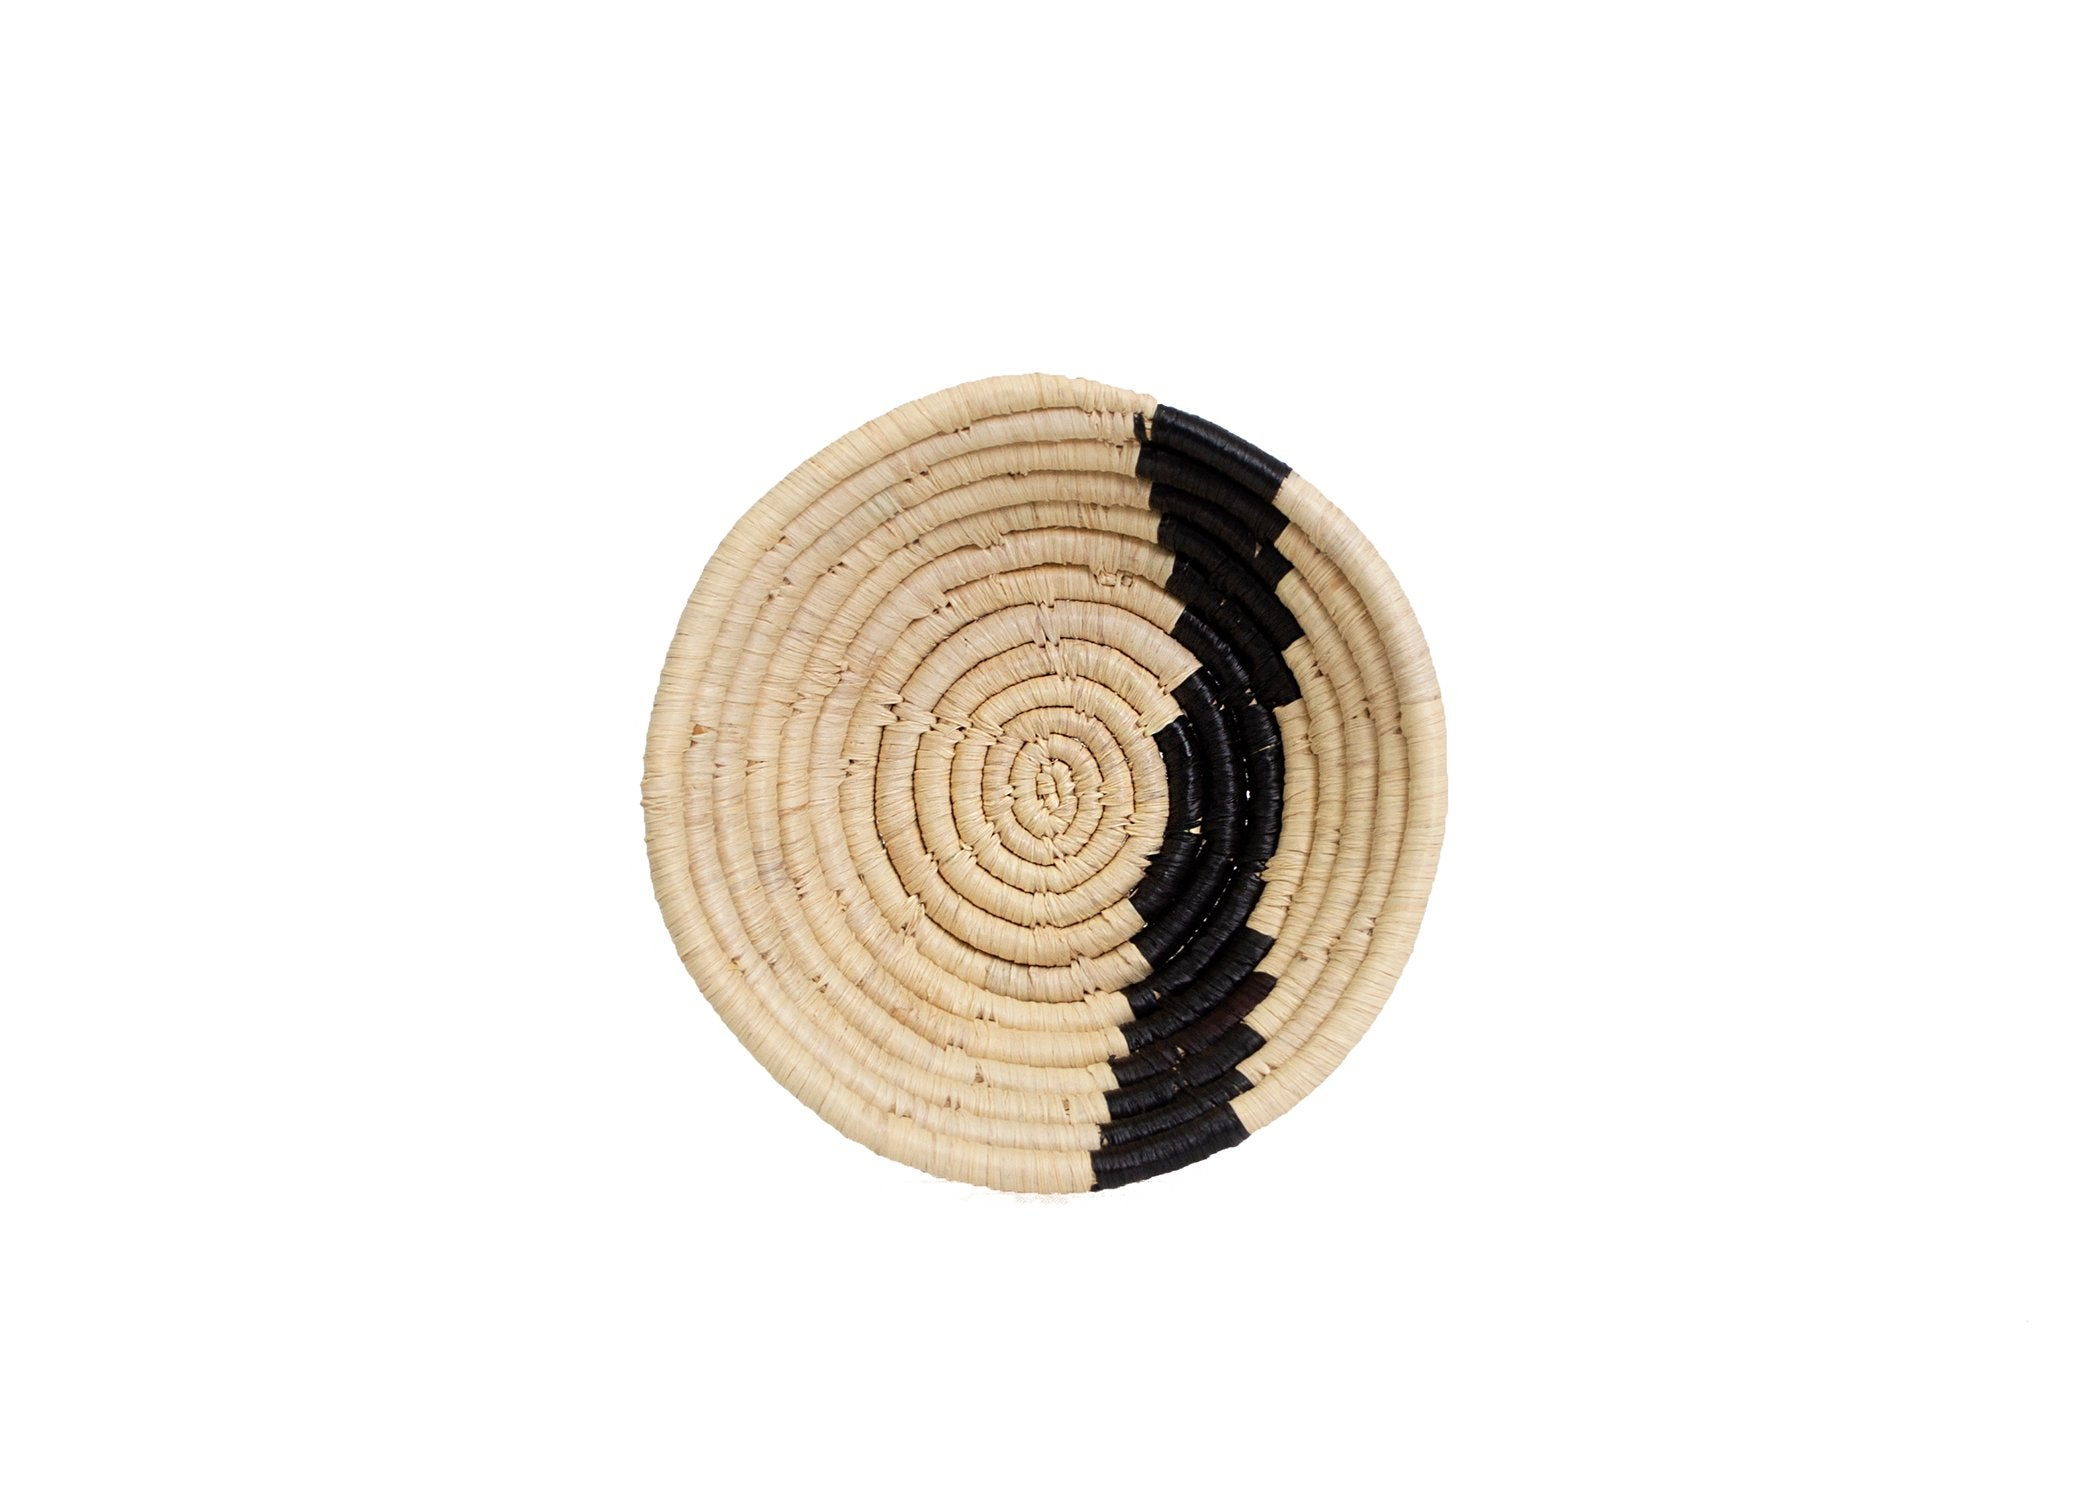 "6"" Small Black + Natural Striped Round Basket - KAZI - Artisan made high quality home decor and wall art"